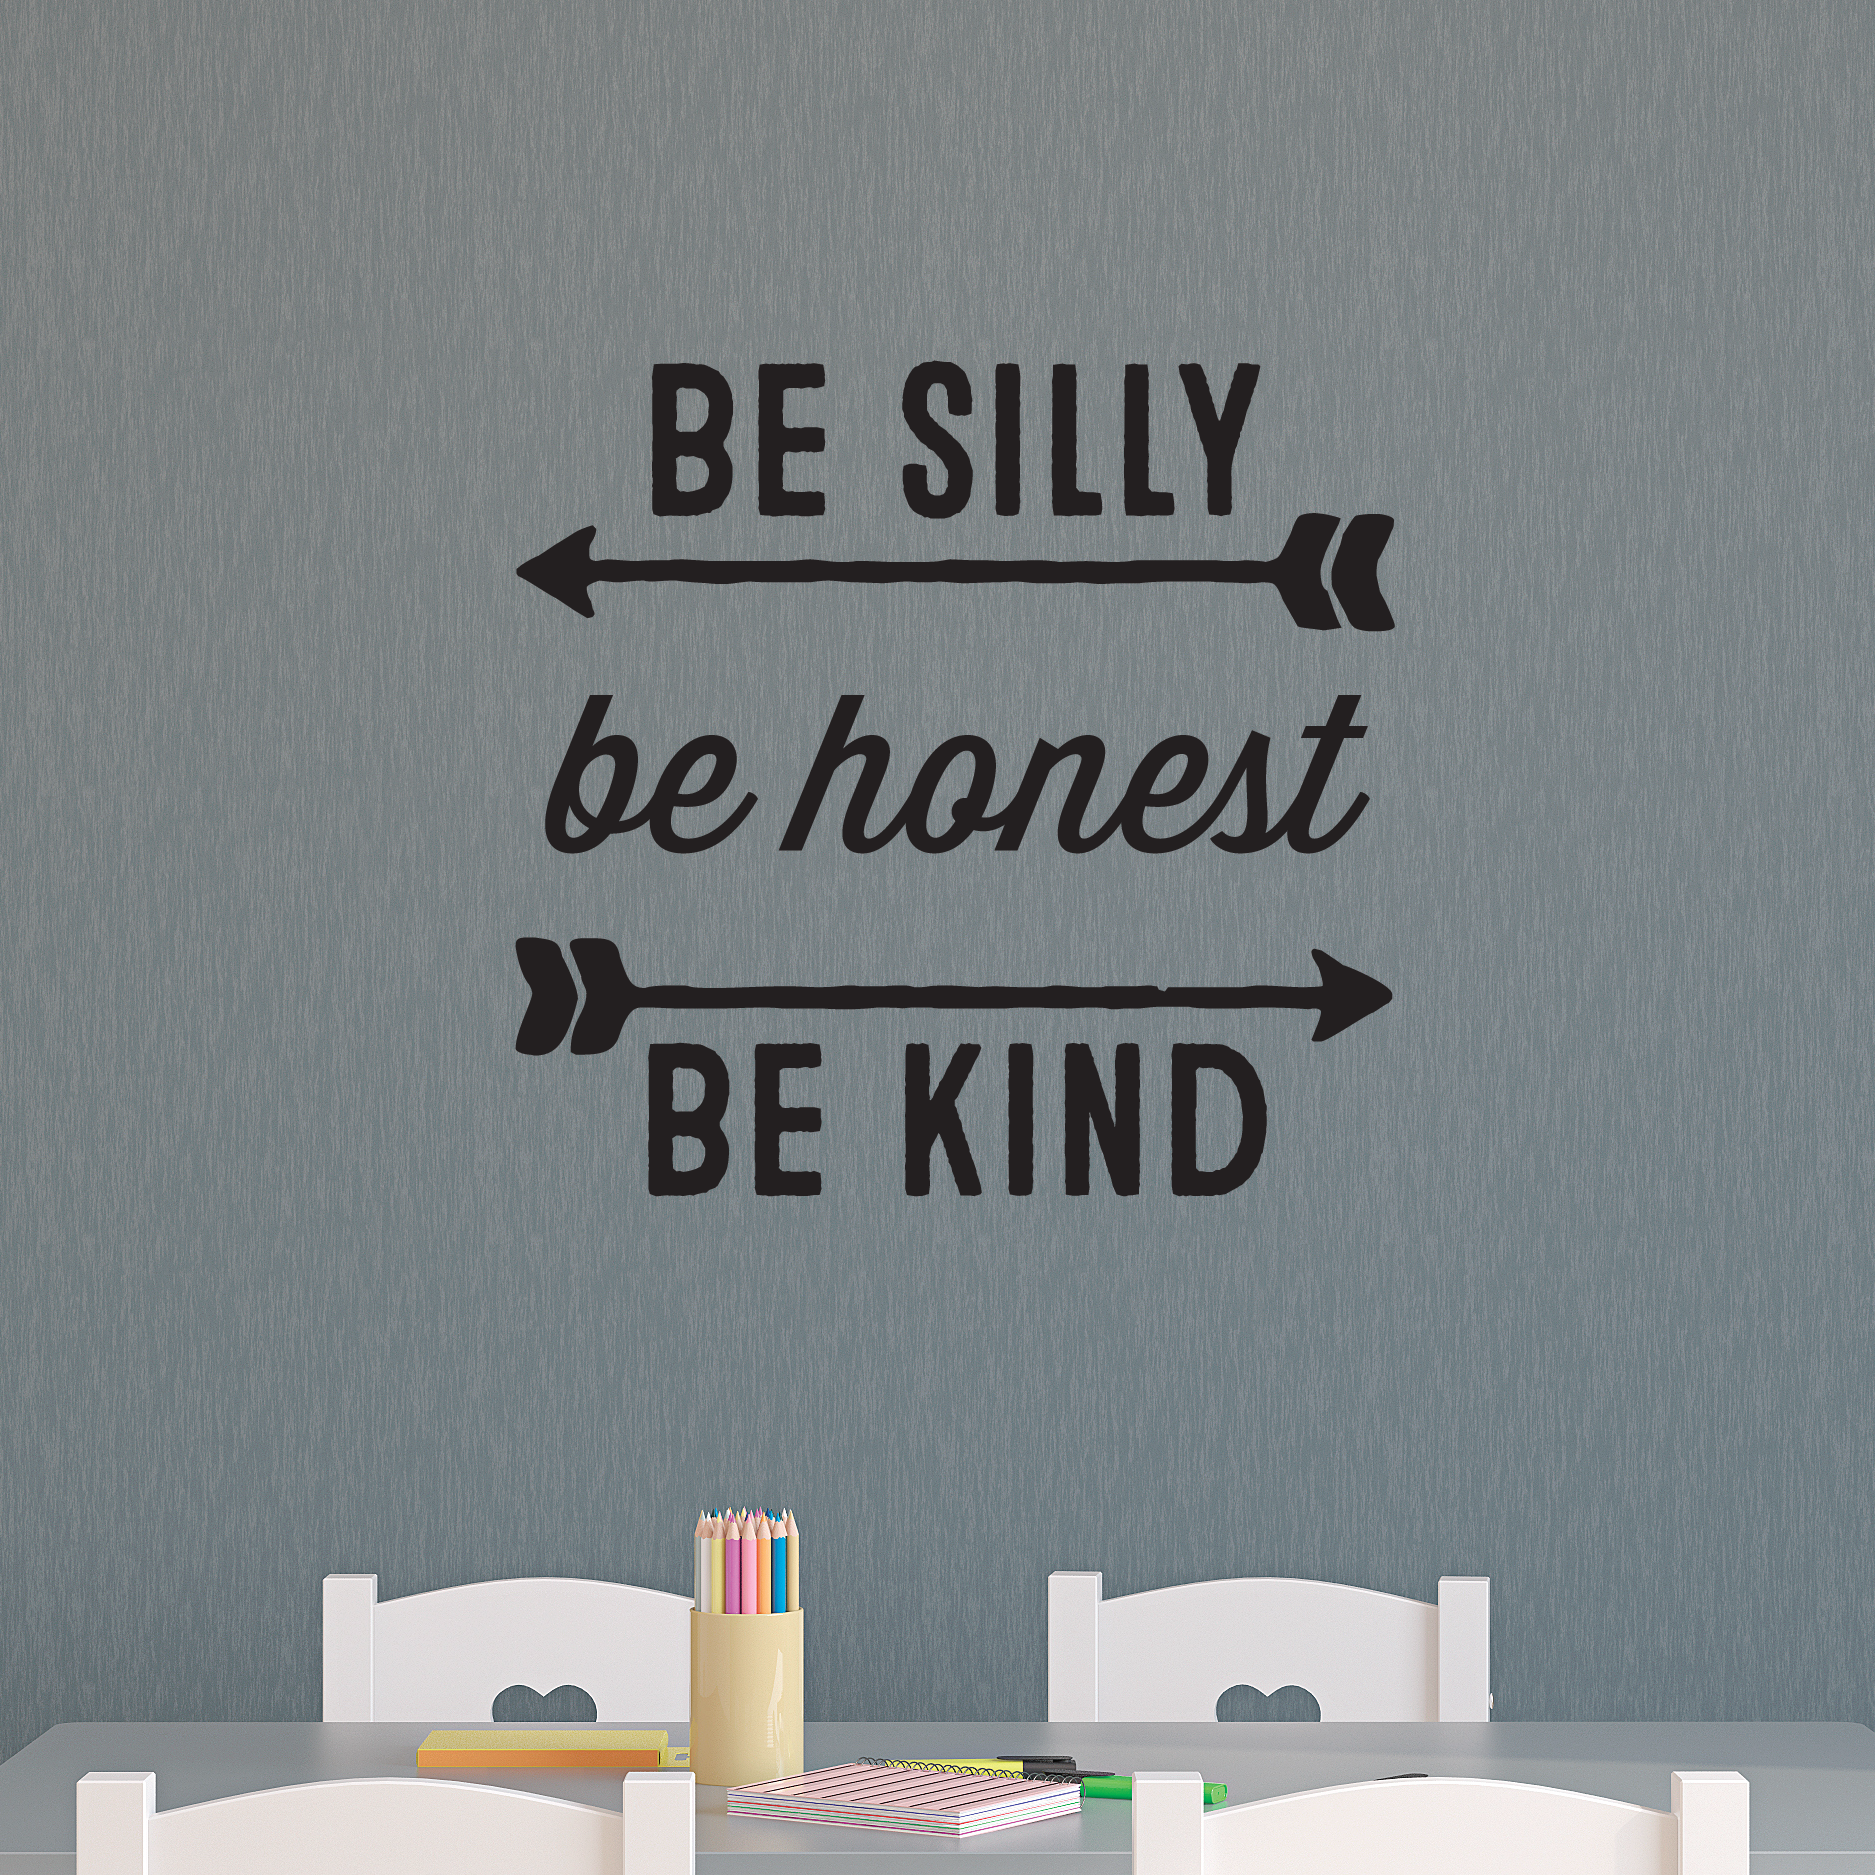 be silly be honest be kind wall quotes u2122 decal